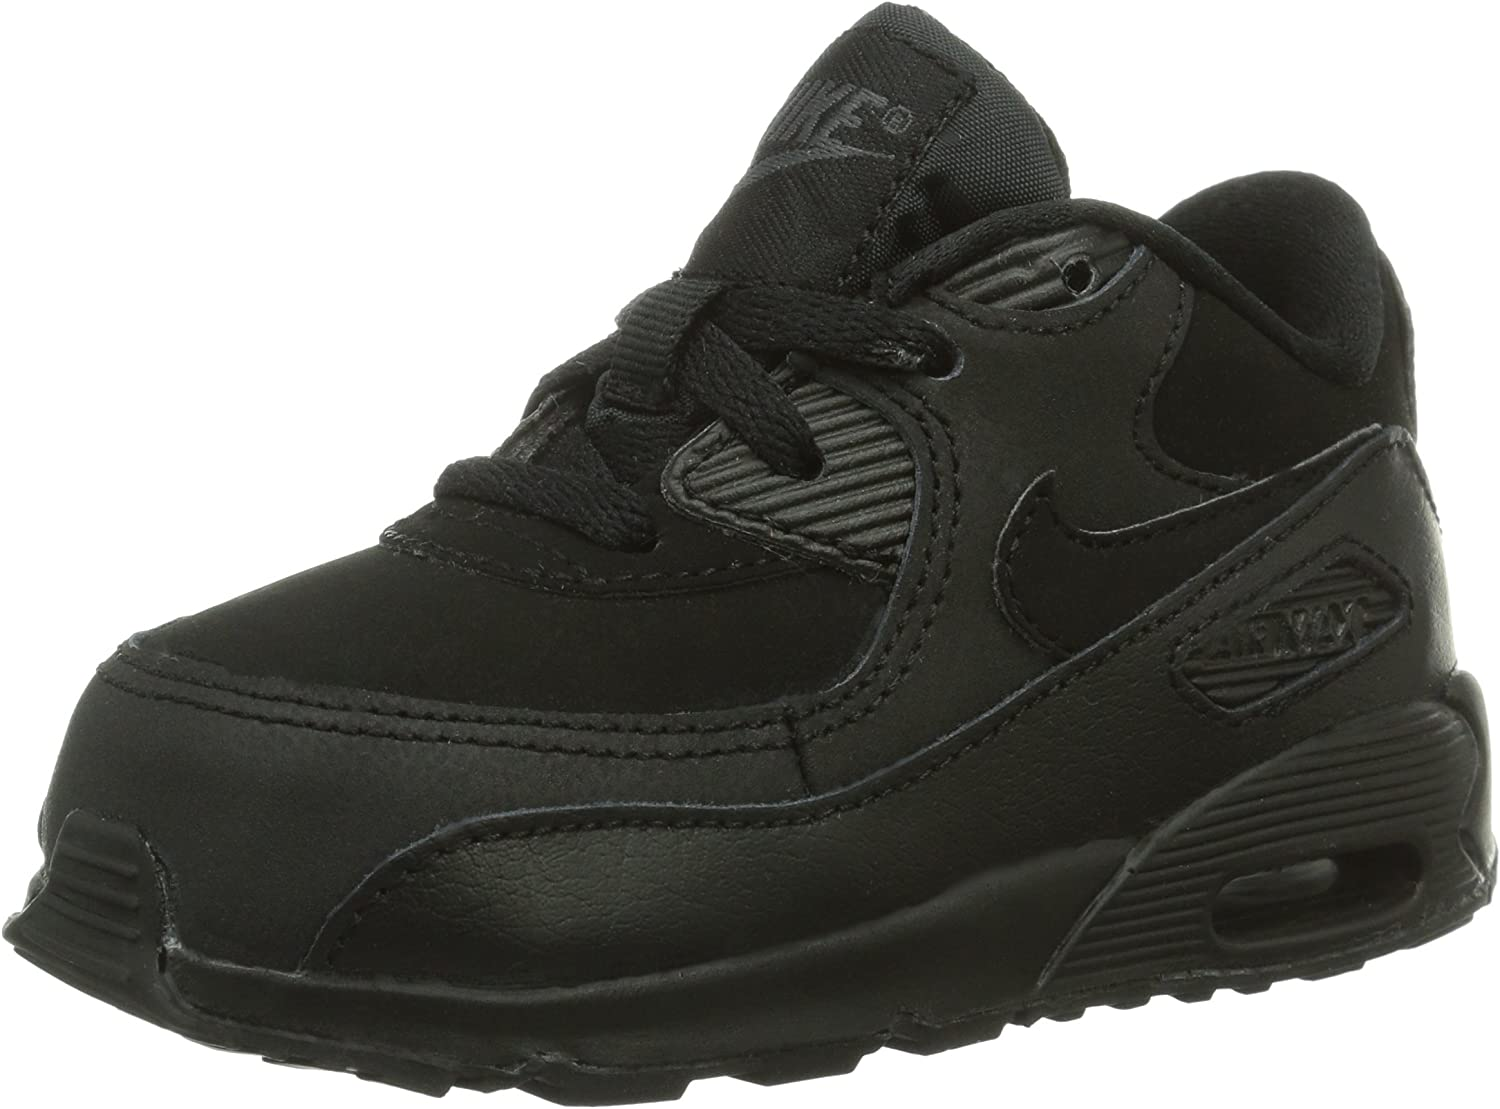 Nike Unisex Kids' Baby Air Max 90 Td Fitness shoes